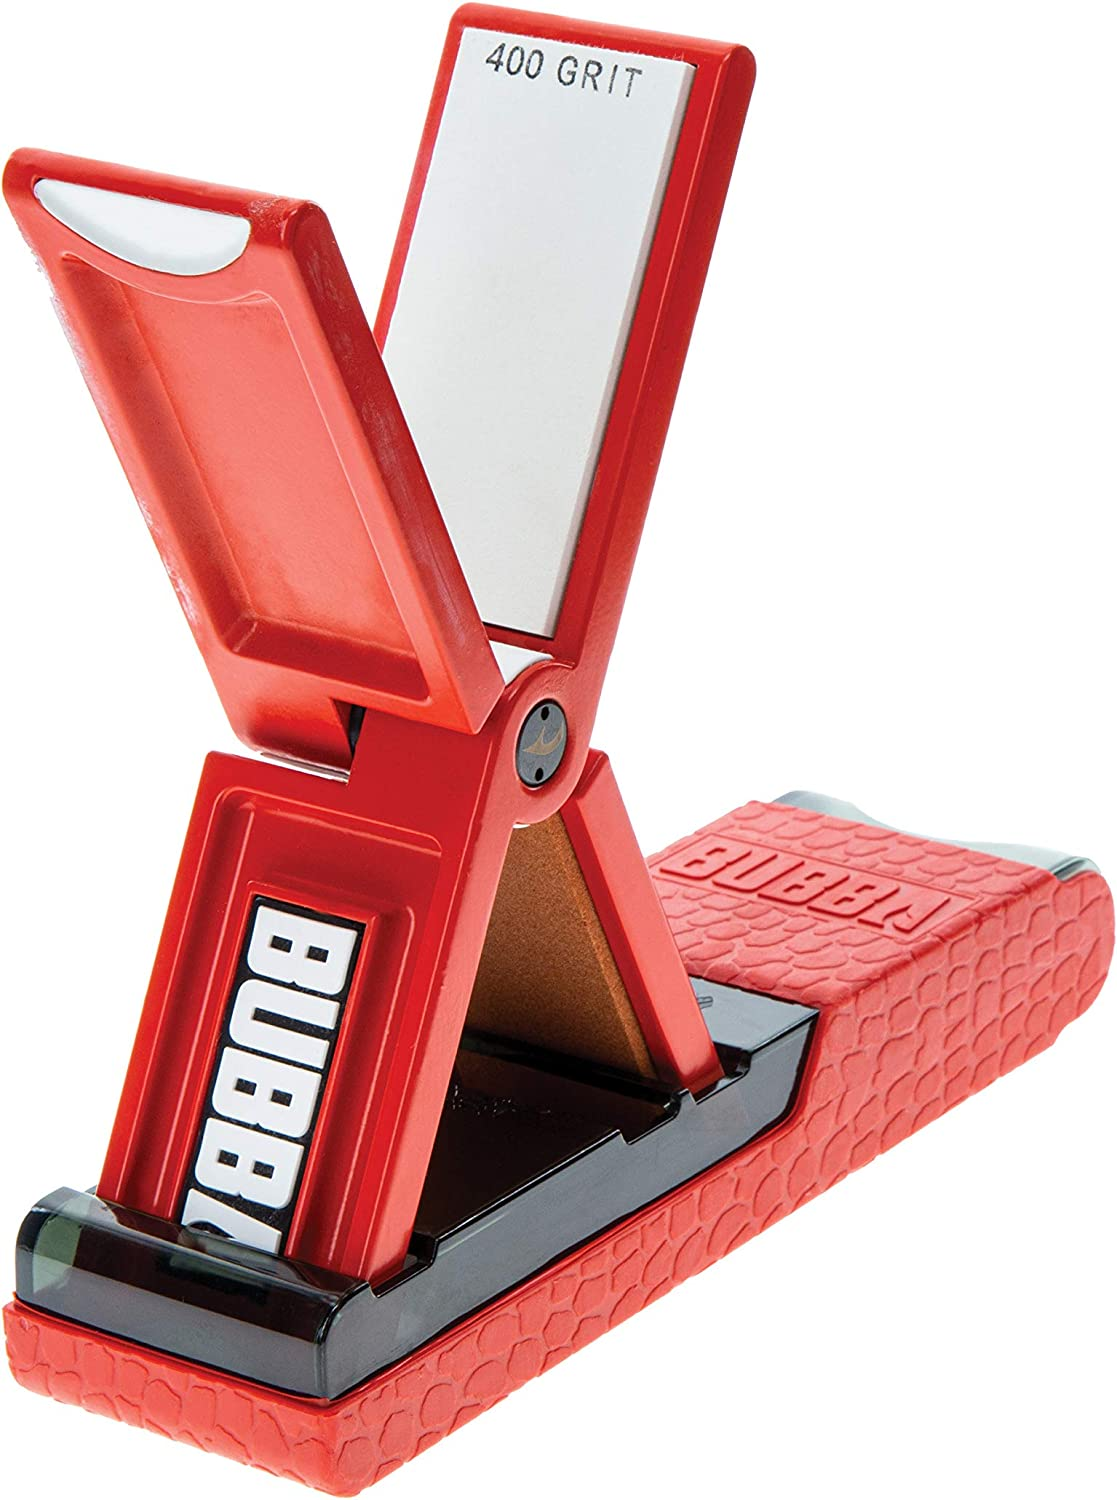 BUBBA Ultra Knife Sharpener with Popular brand in the world Max 80% OFF Base Non-Slip Sharpene Grip and